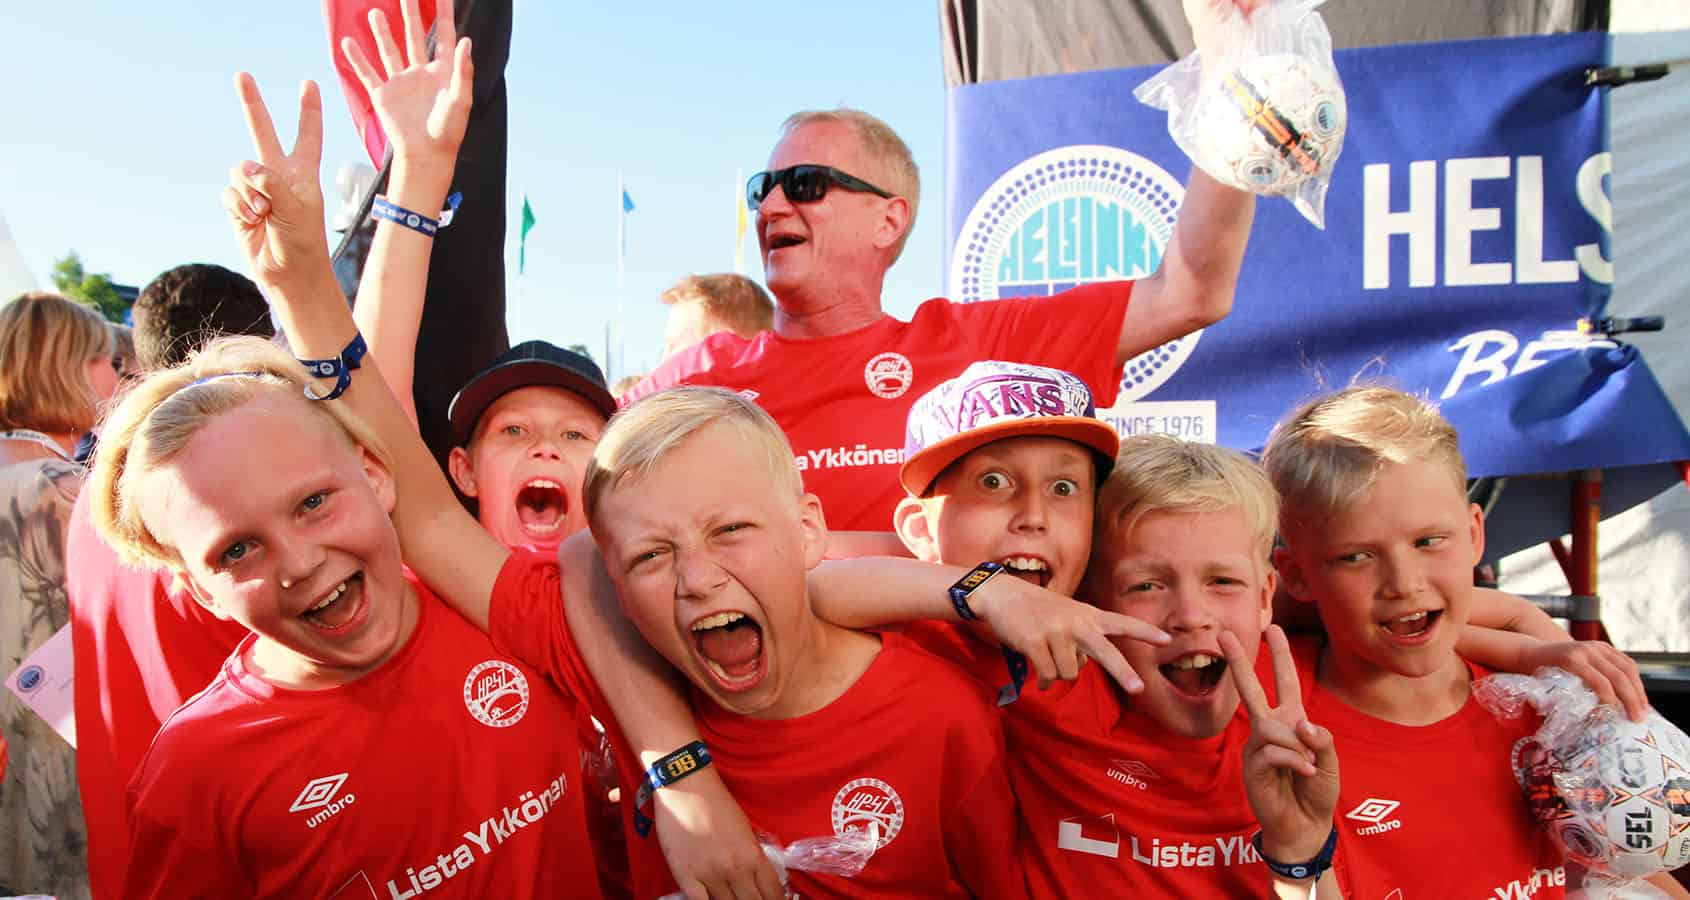 Inspirational image for Helsinki Cup